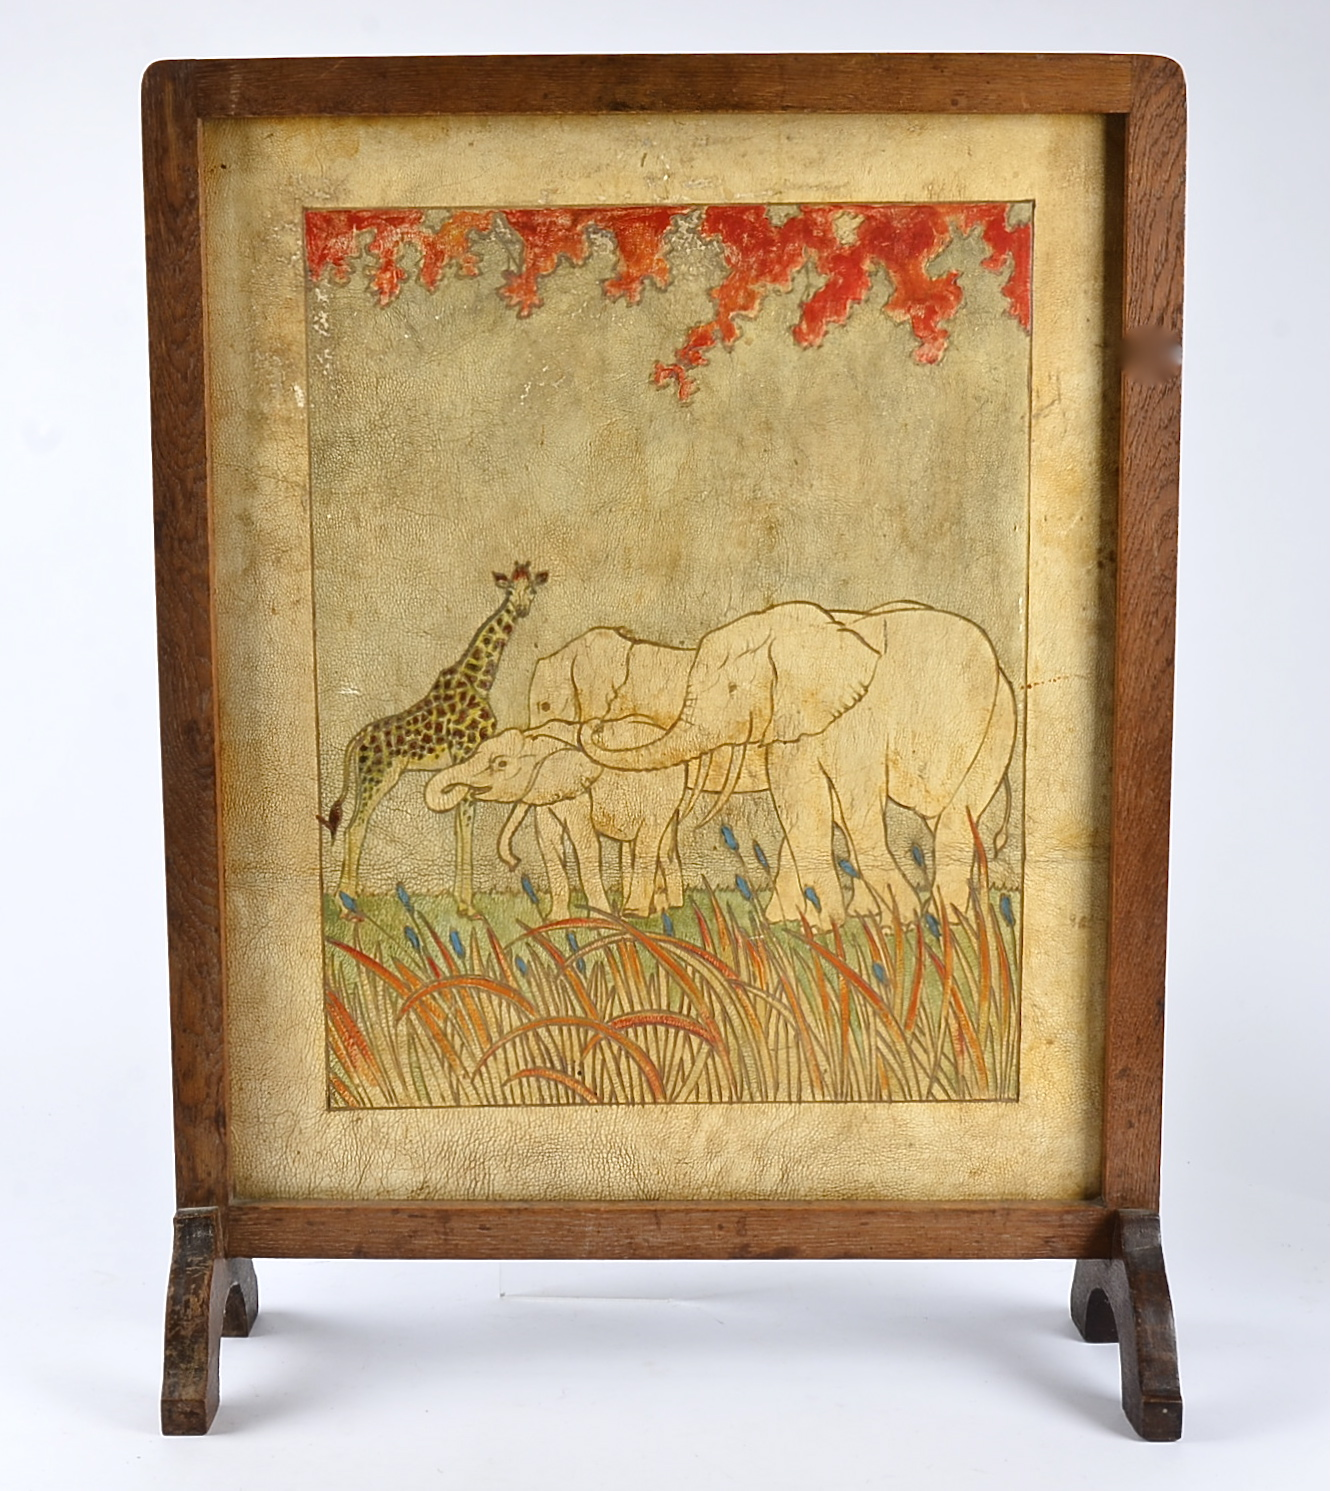 Lot 77 - An early 20th Century fire screen, with a depiction of elephants and a giraffe, together with a